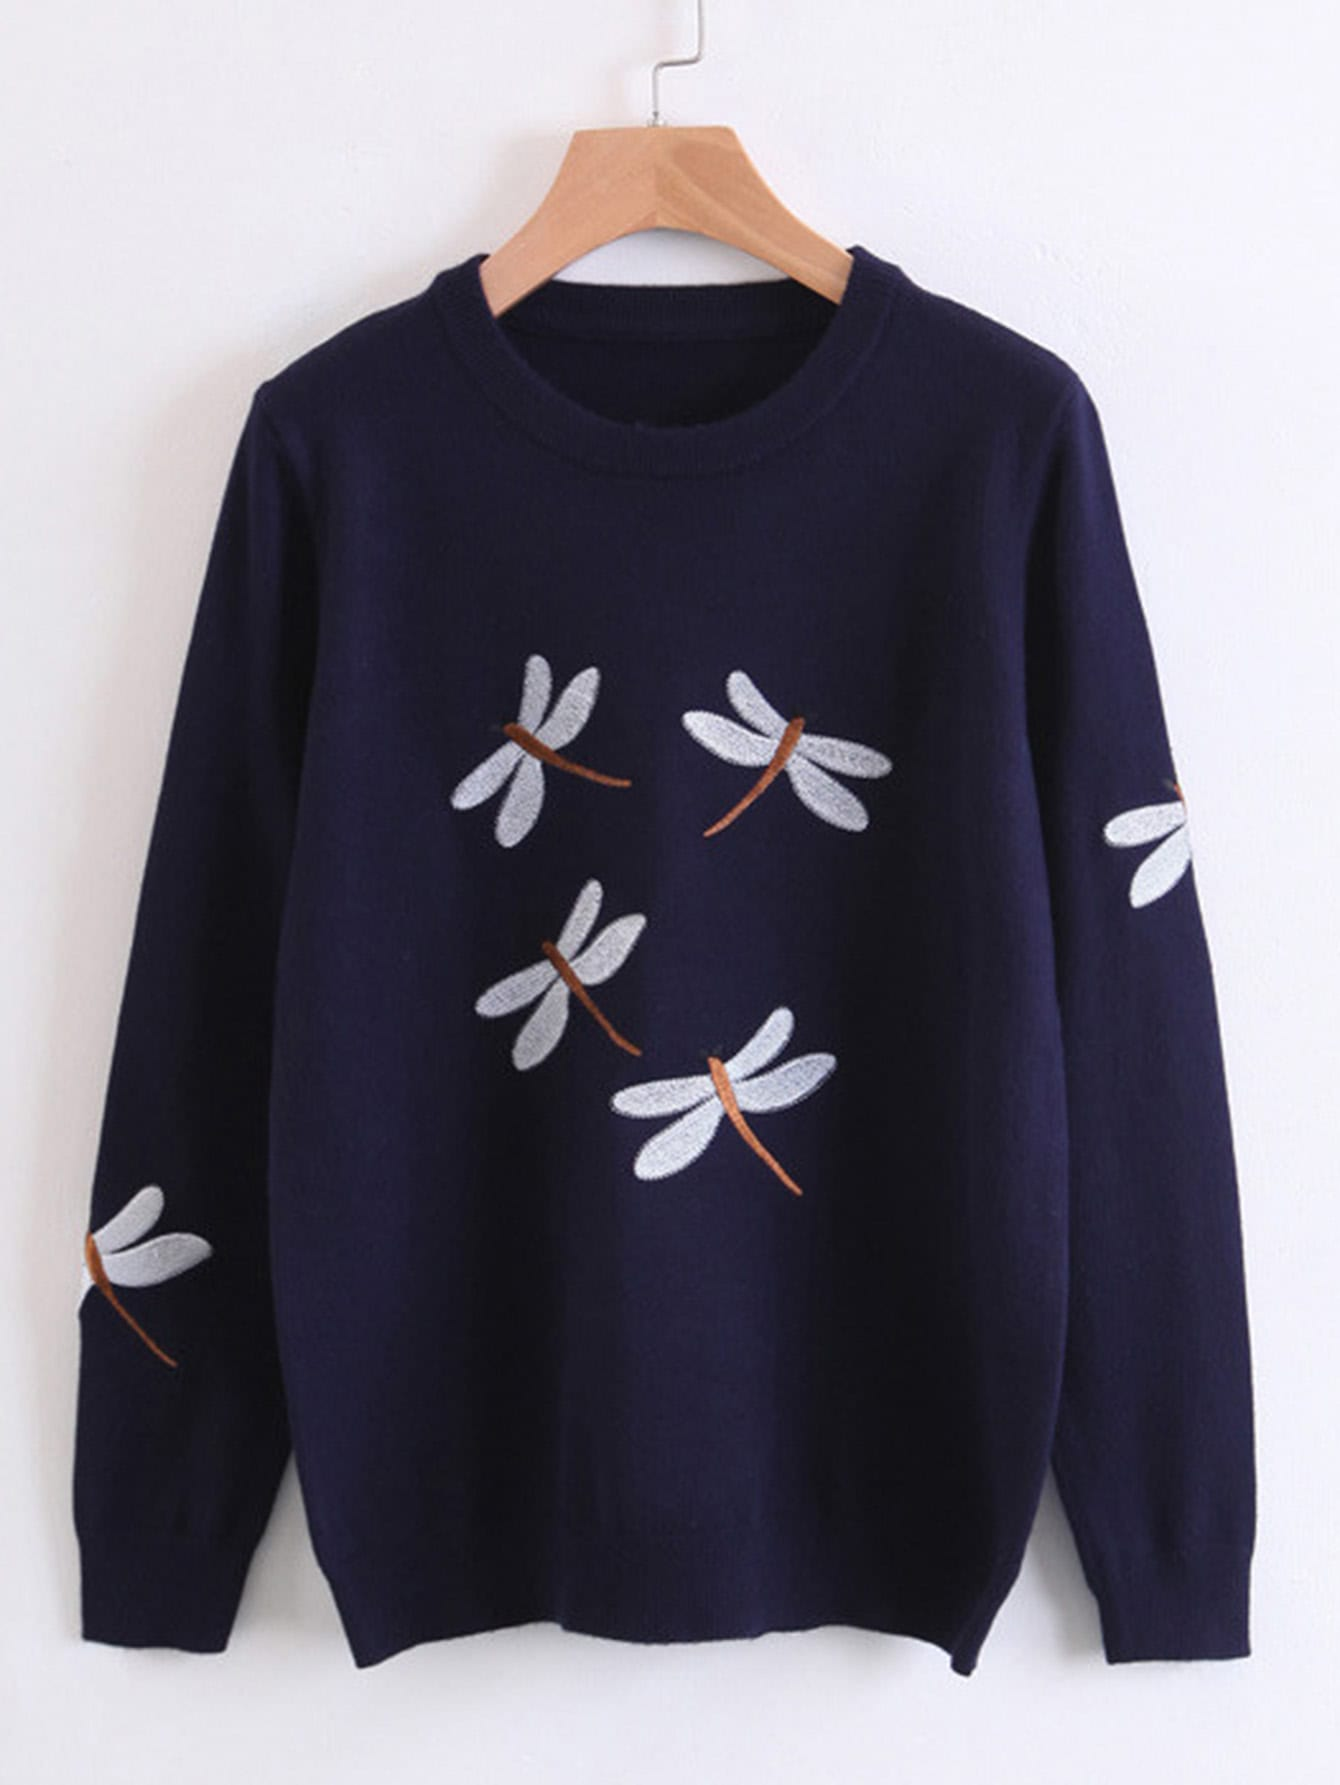 Dragonfly Embroidery Jumper Sweater